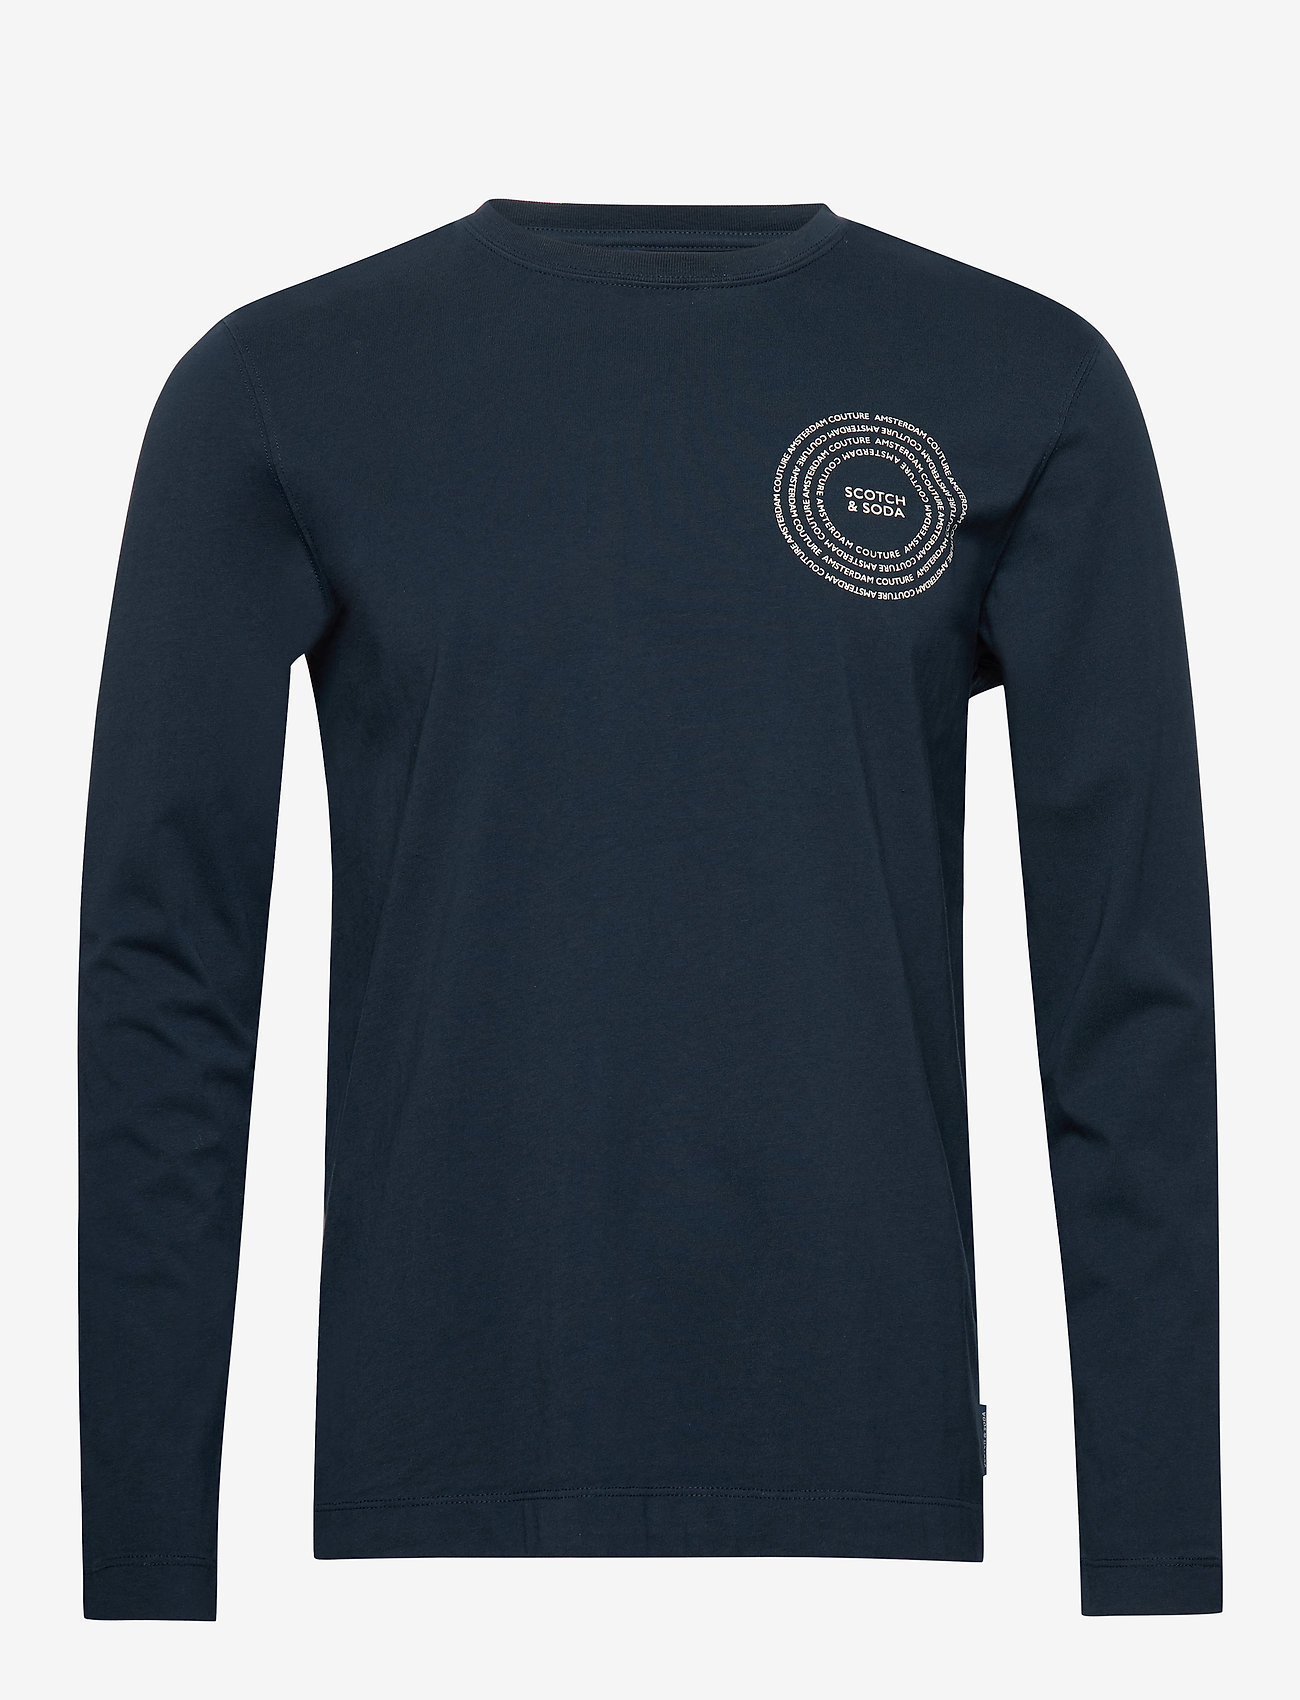 Scotch & Soda - Organic cotton longsleeve tee with chest artwork - basic t-shirts - night - 0